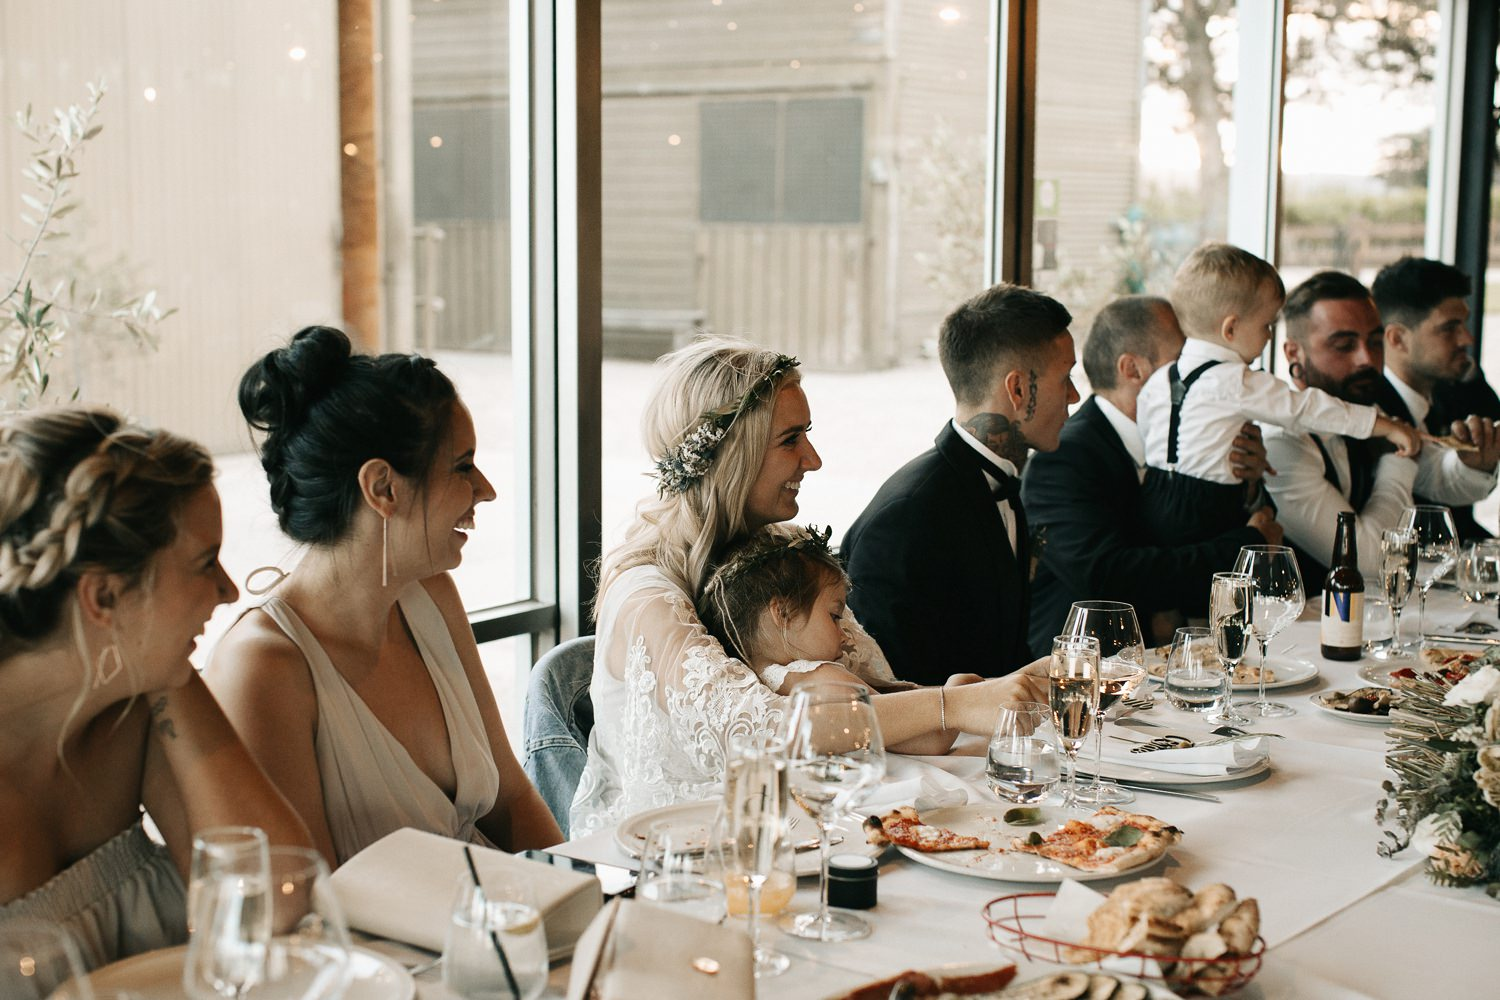 zonzo-estate-yarra-valley-wedding-photographer_0095.jpg